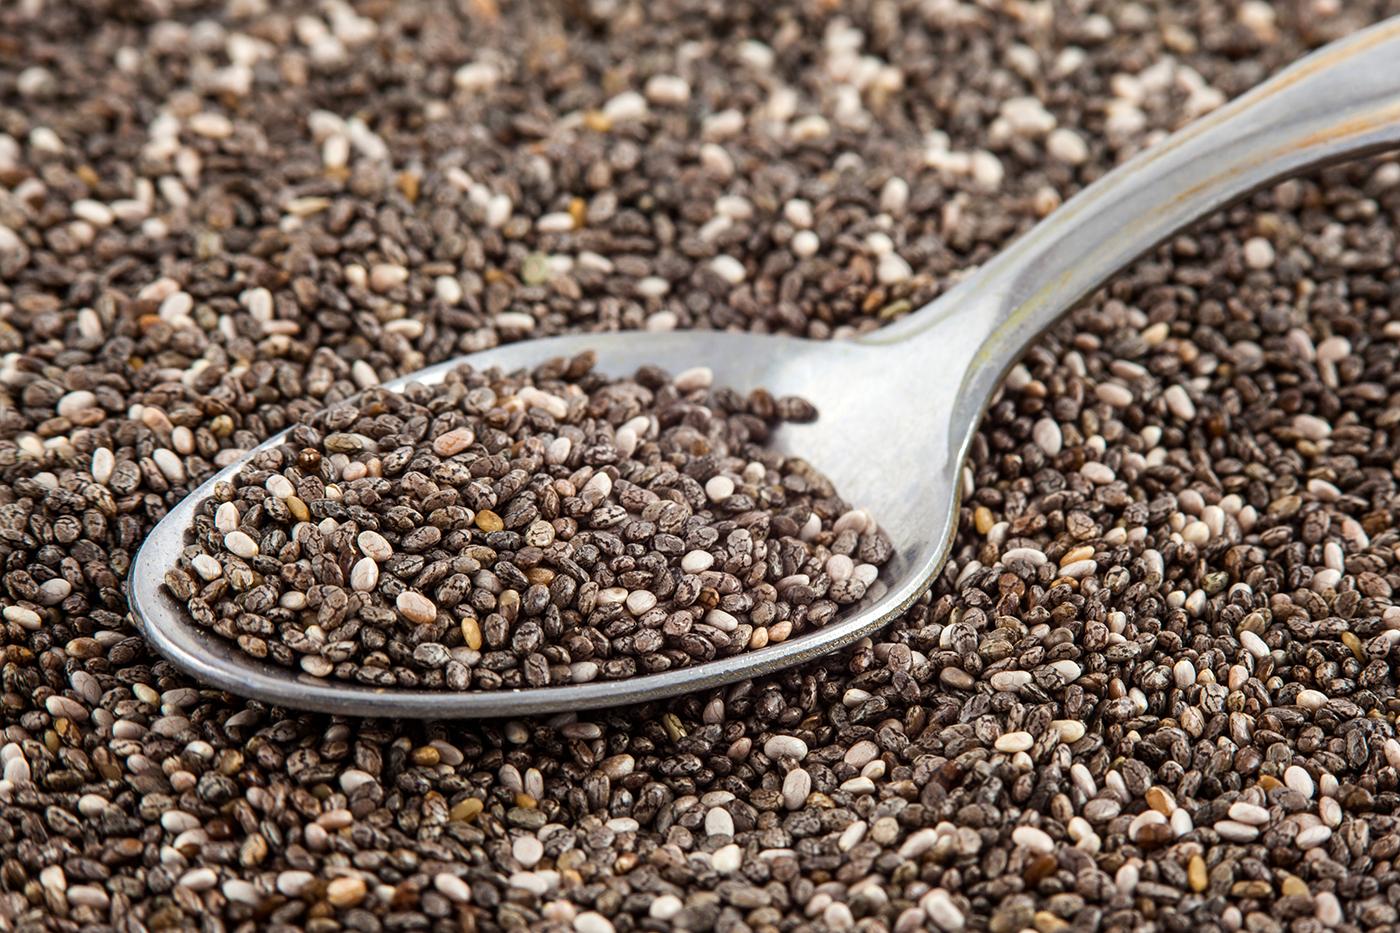 Chia seeds from Salvia Hispanica. Now an important food high in omega 3 fatty acid and fibre. Aztecs and Mayans used chia seeds as a source of energy.